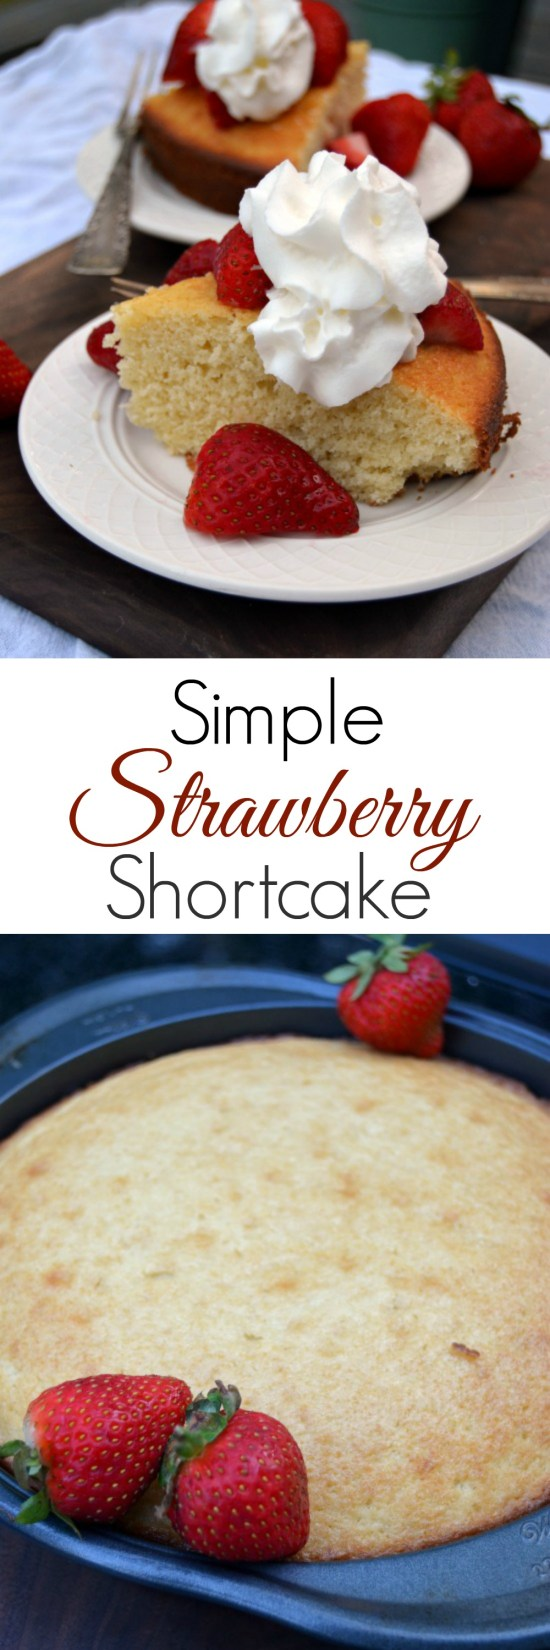 Simple Strawberry Shortcake pin